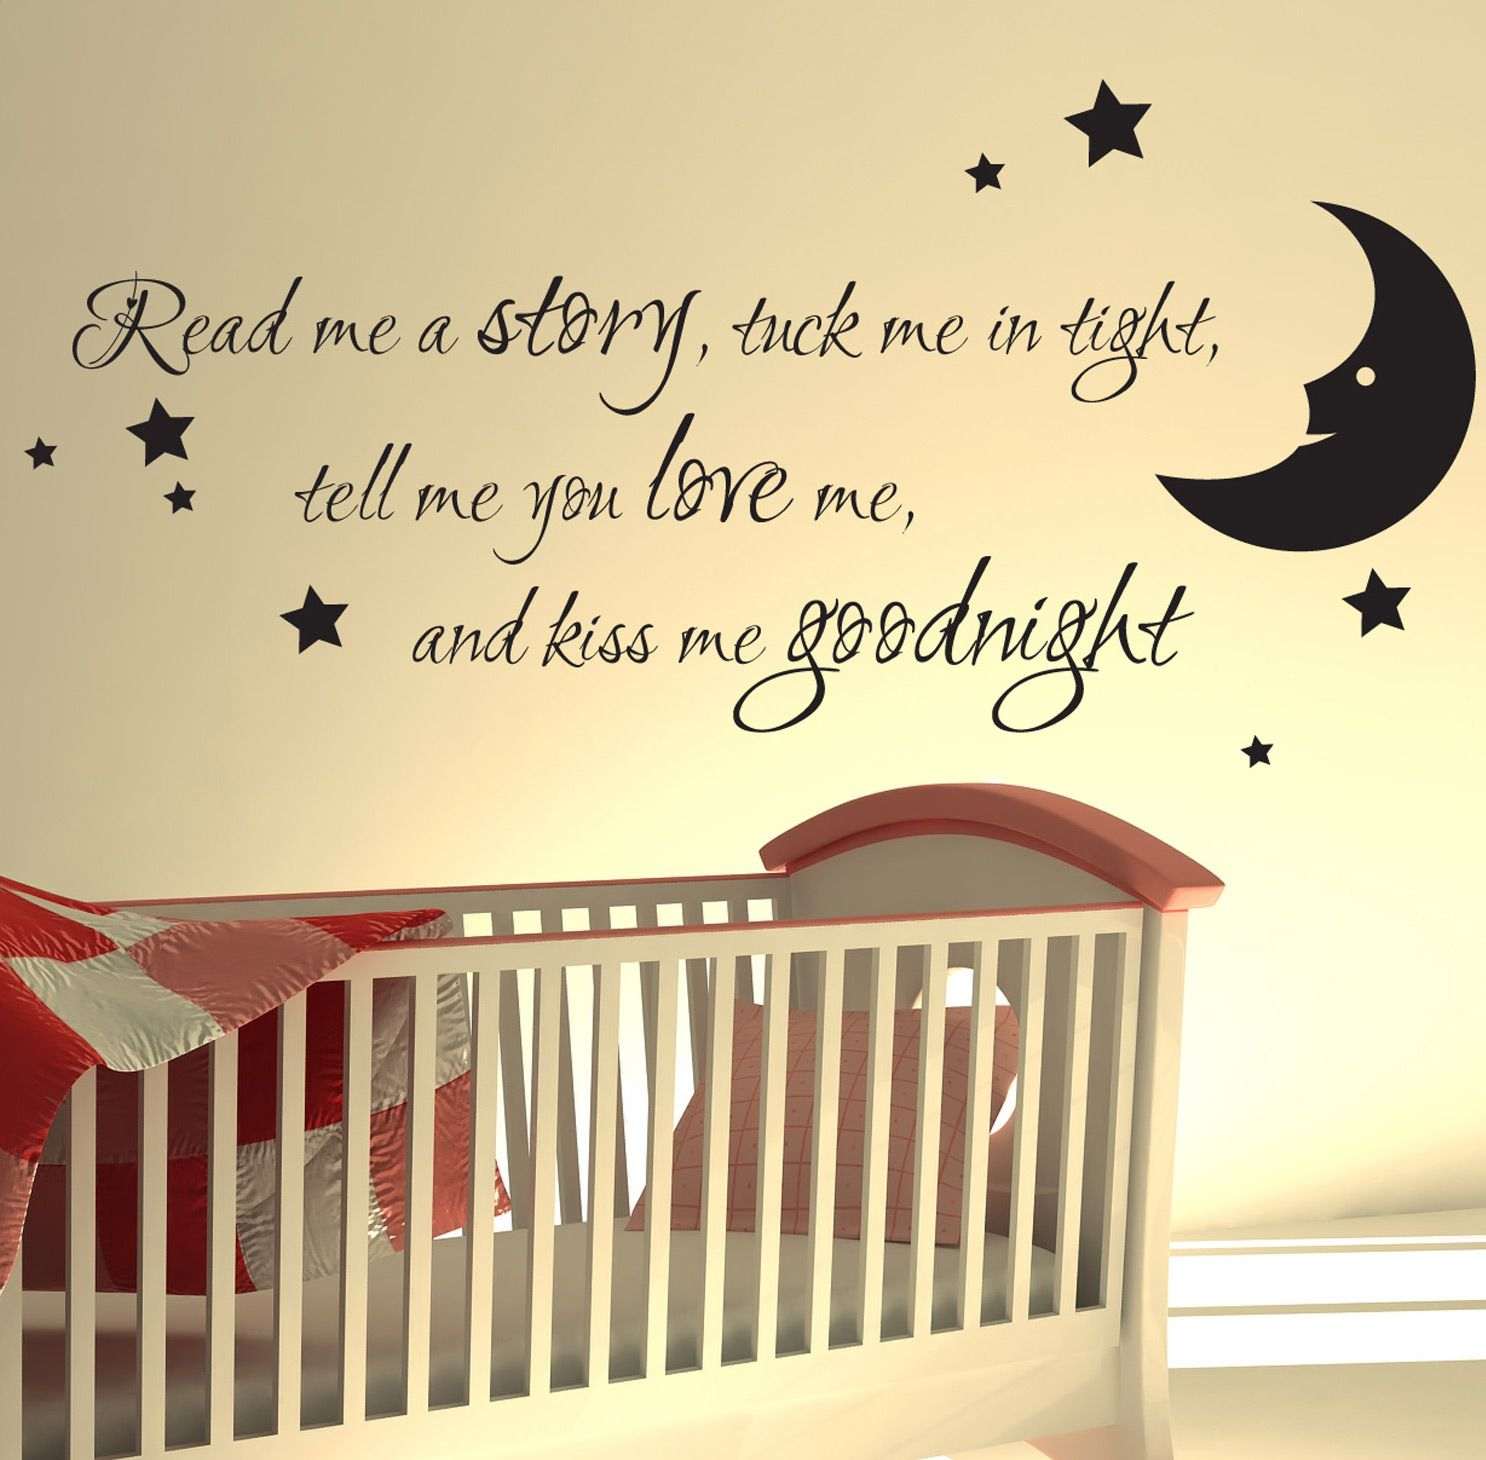 Nursery wall sticker read me a story kids art decals quotes w47 nursery wall sticker read me a story kids art decals quotes w47 amipublicfo Choice Image